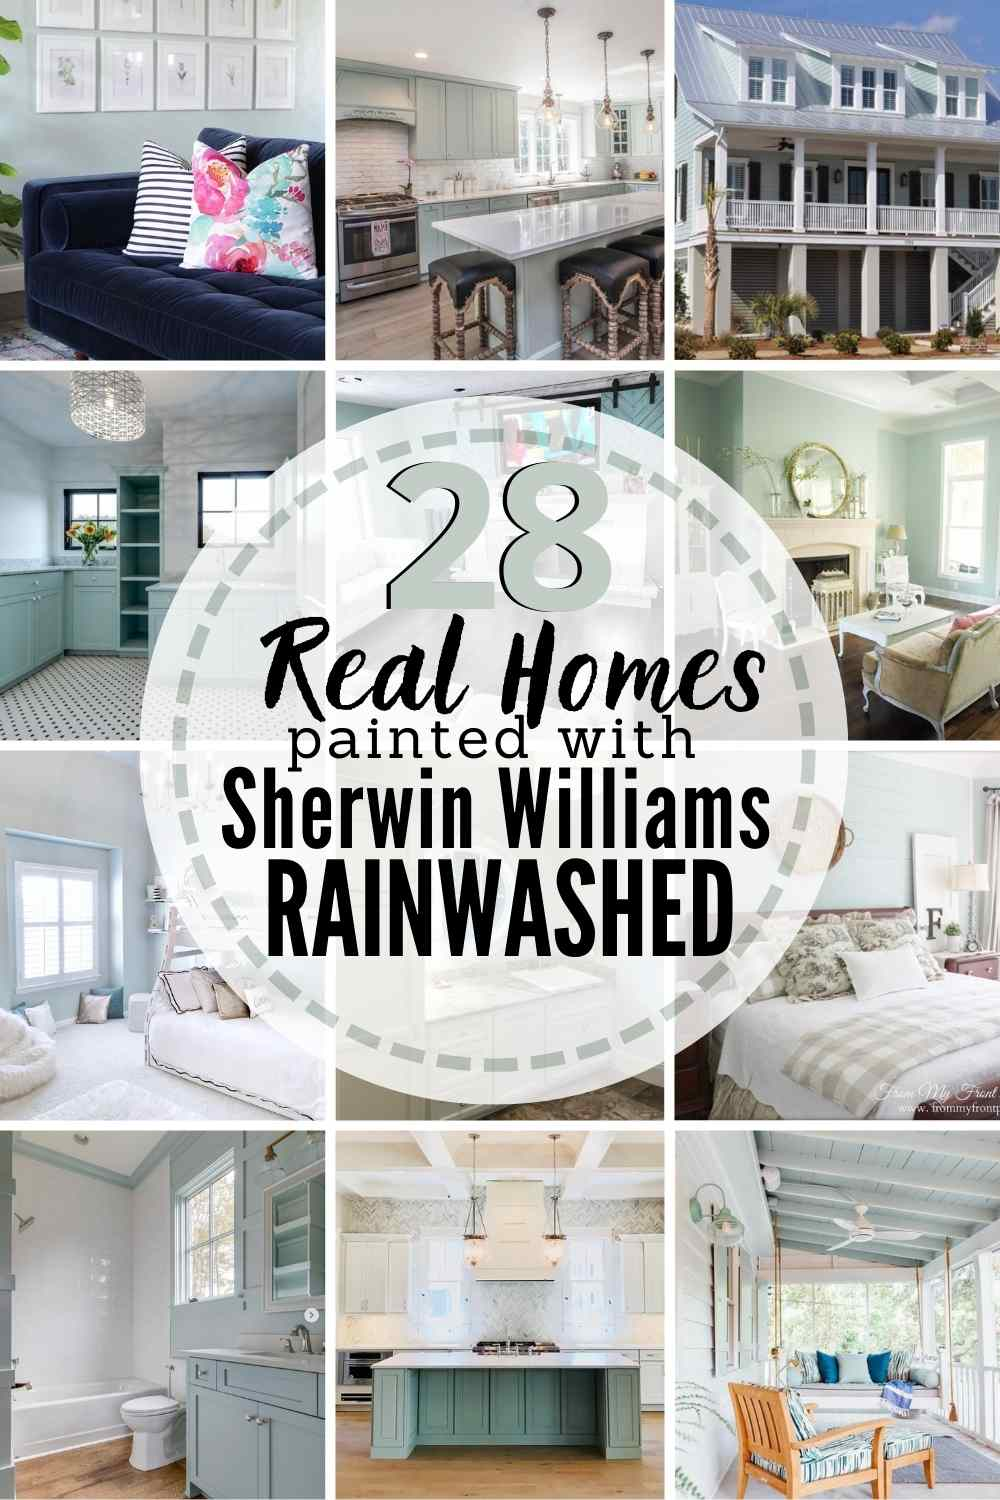 Sherwin Williams Rainwashed 28 Homes That Use It The Heathered Nest